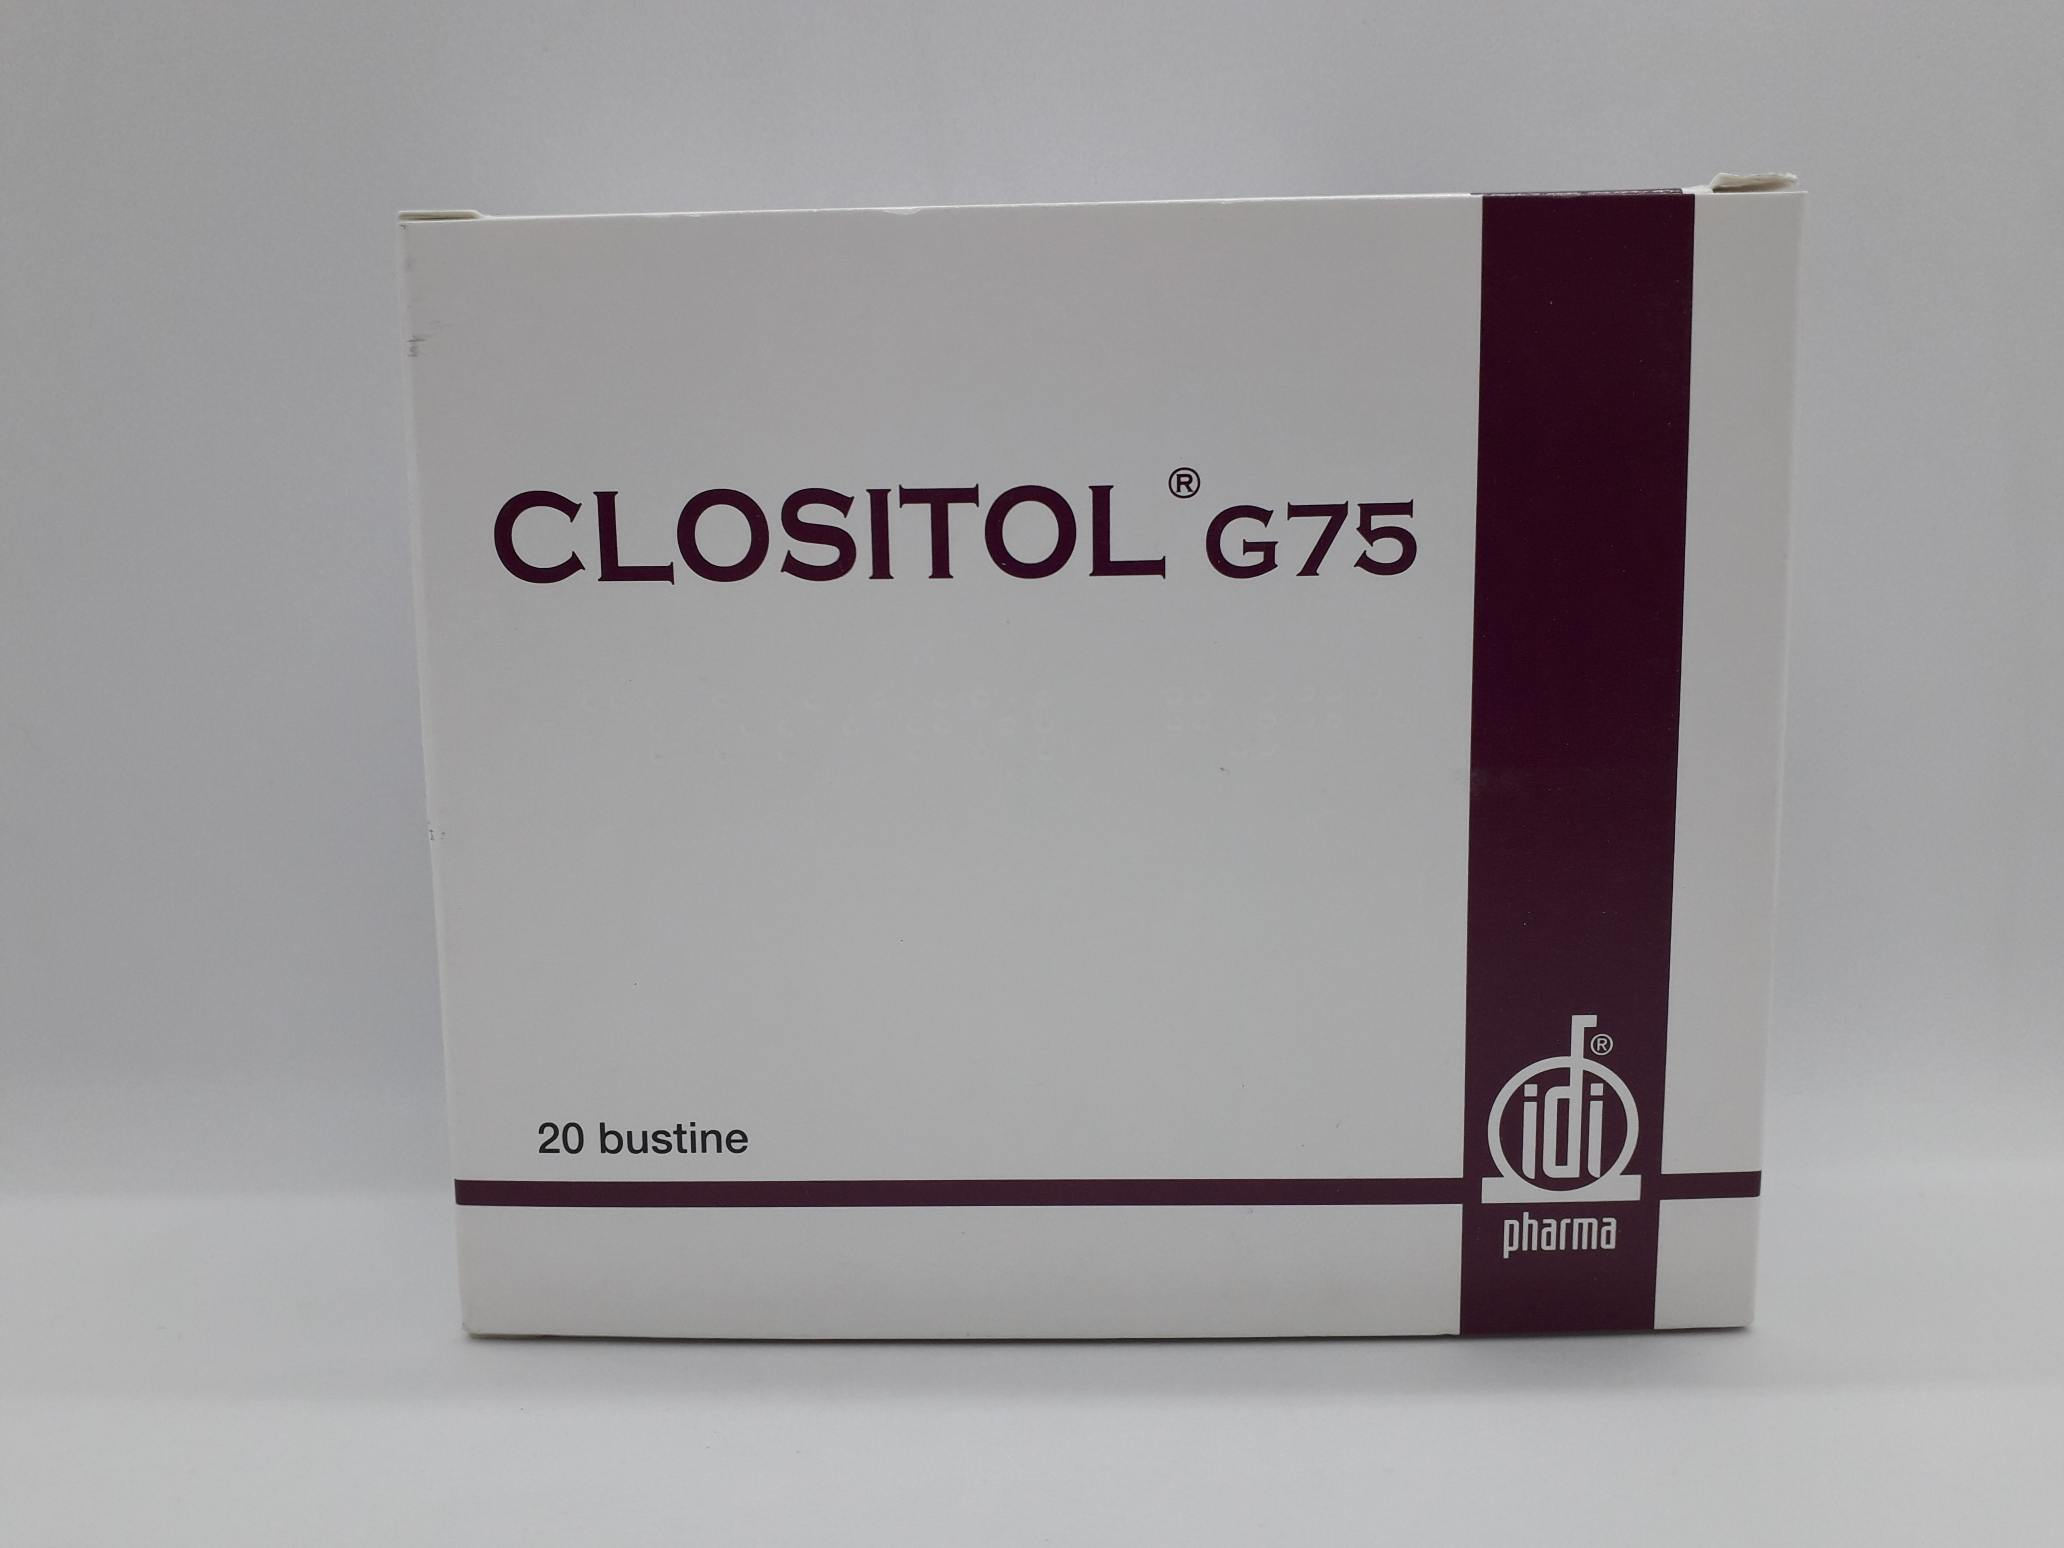 CLOSITOL G75 20 BUSTINE - Farmaciaempatica.it